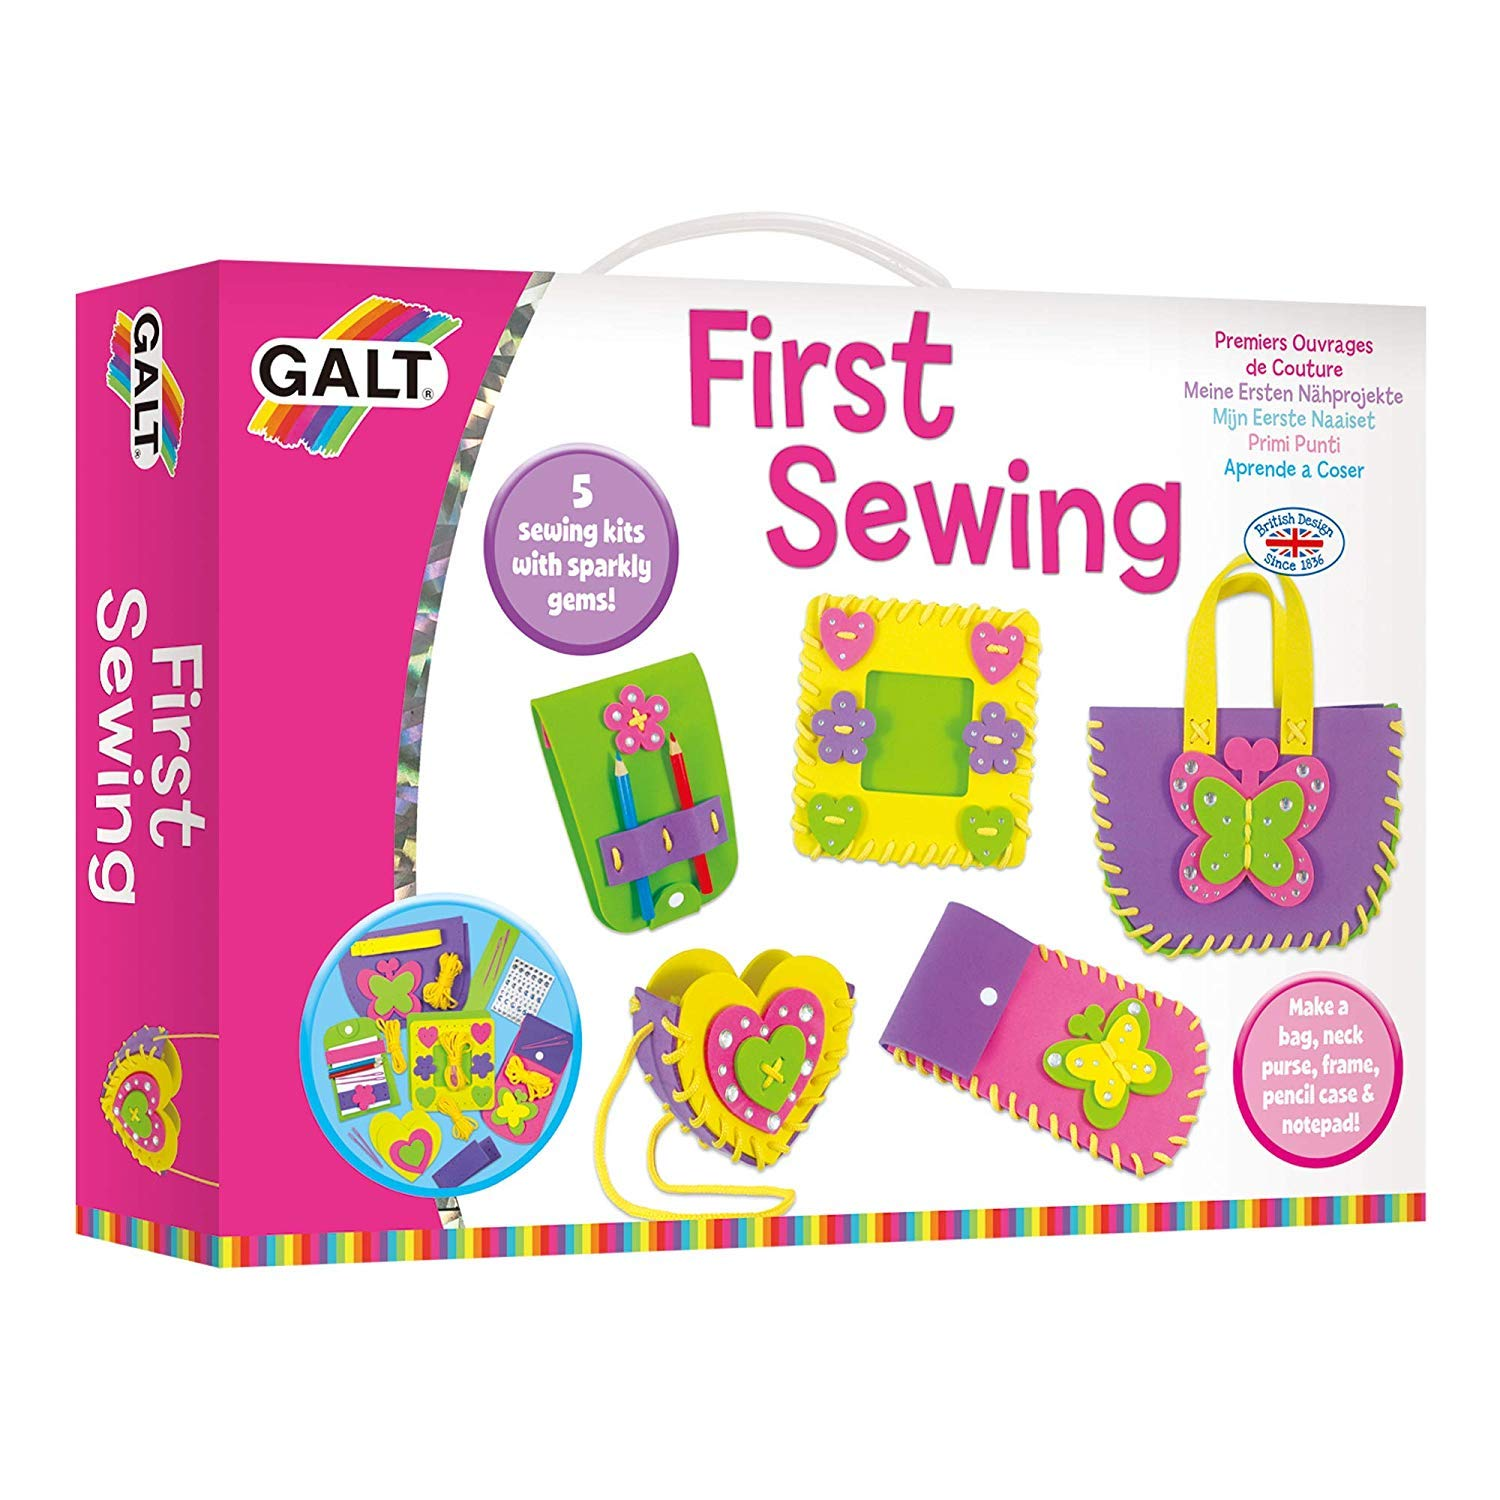 B0002X7XW8 Galt Toys, First Sewing Kit for Kids, Learn to Sew DIY Craft Kit, Ages 5+ 71TpuRmtdnL